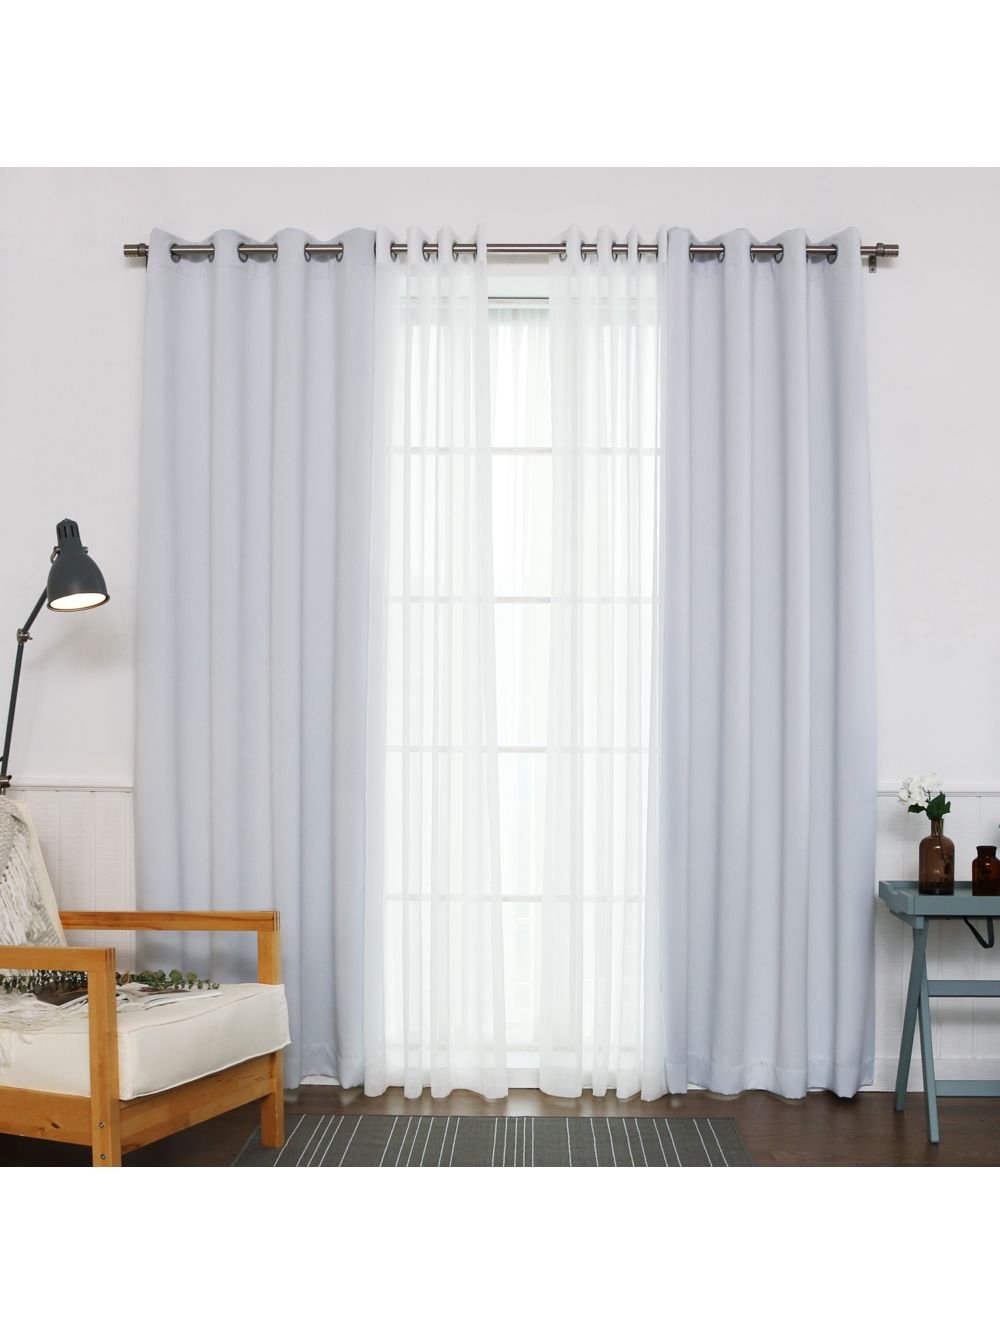 Umixm Sheer Faux Linen & Blackout Curtains – Vapor With Faux Linen Blackout Curtains (View 14 of 20)